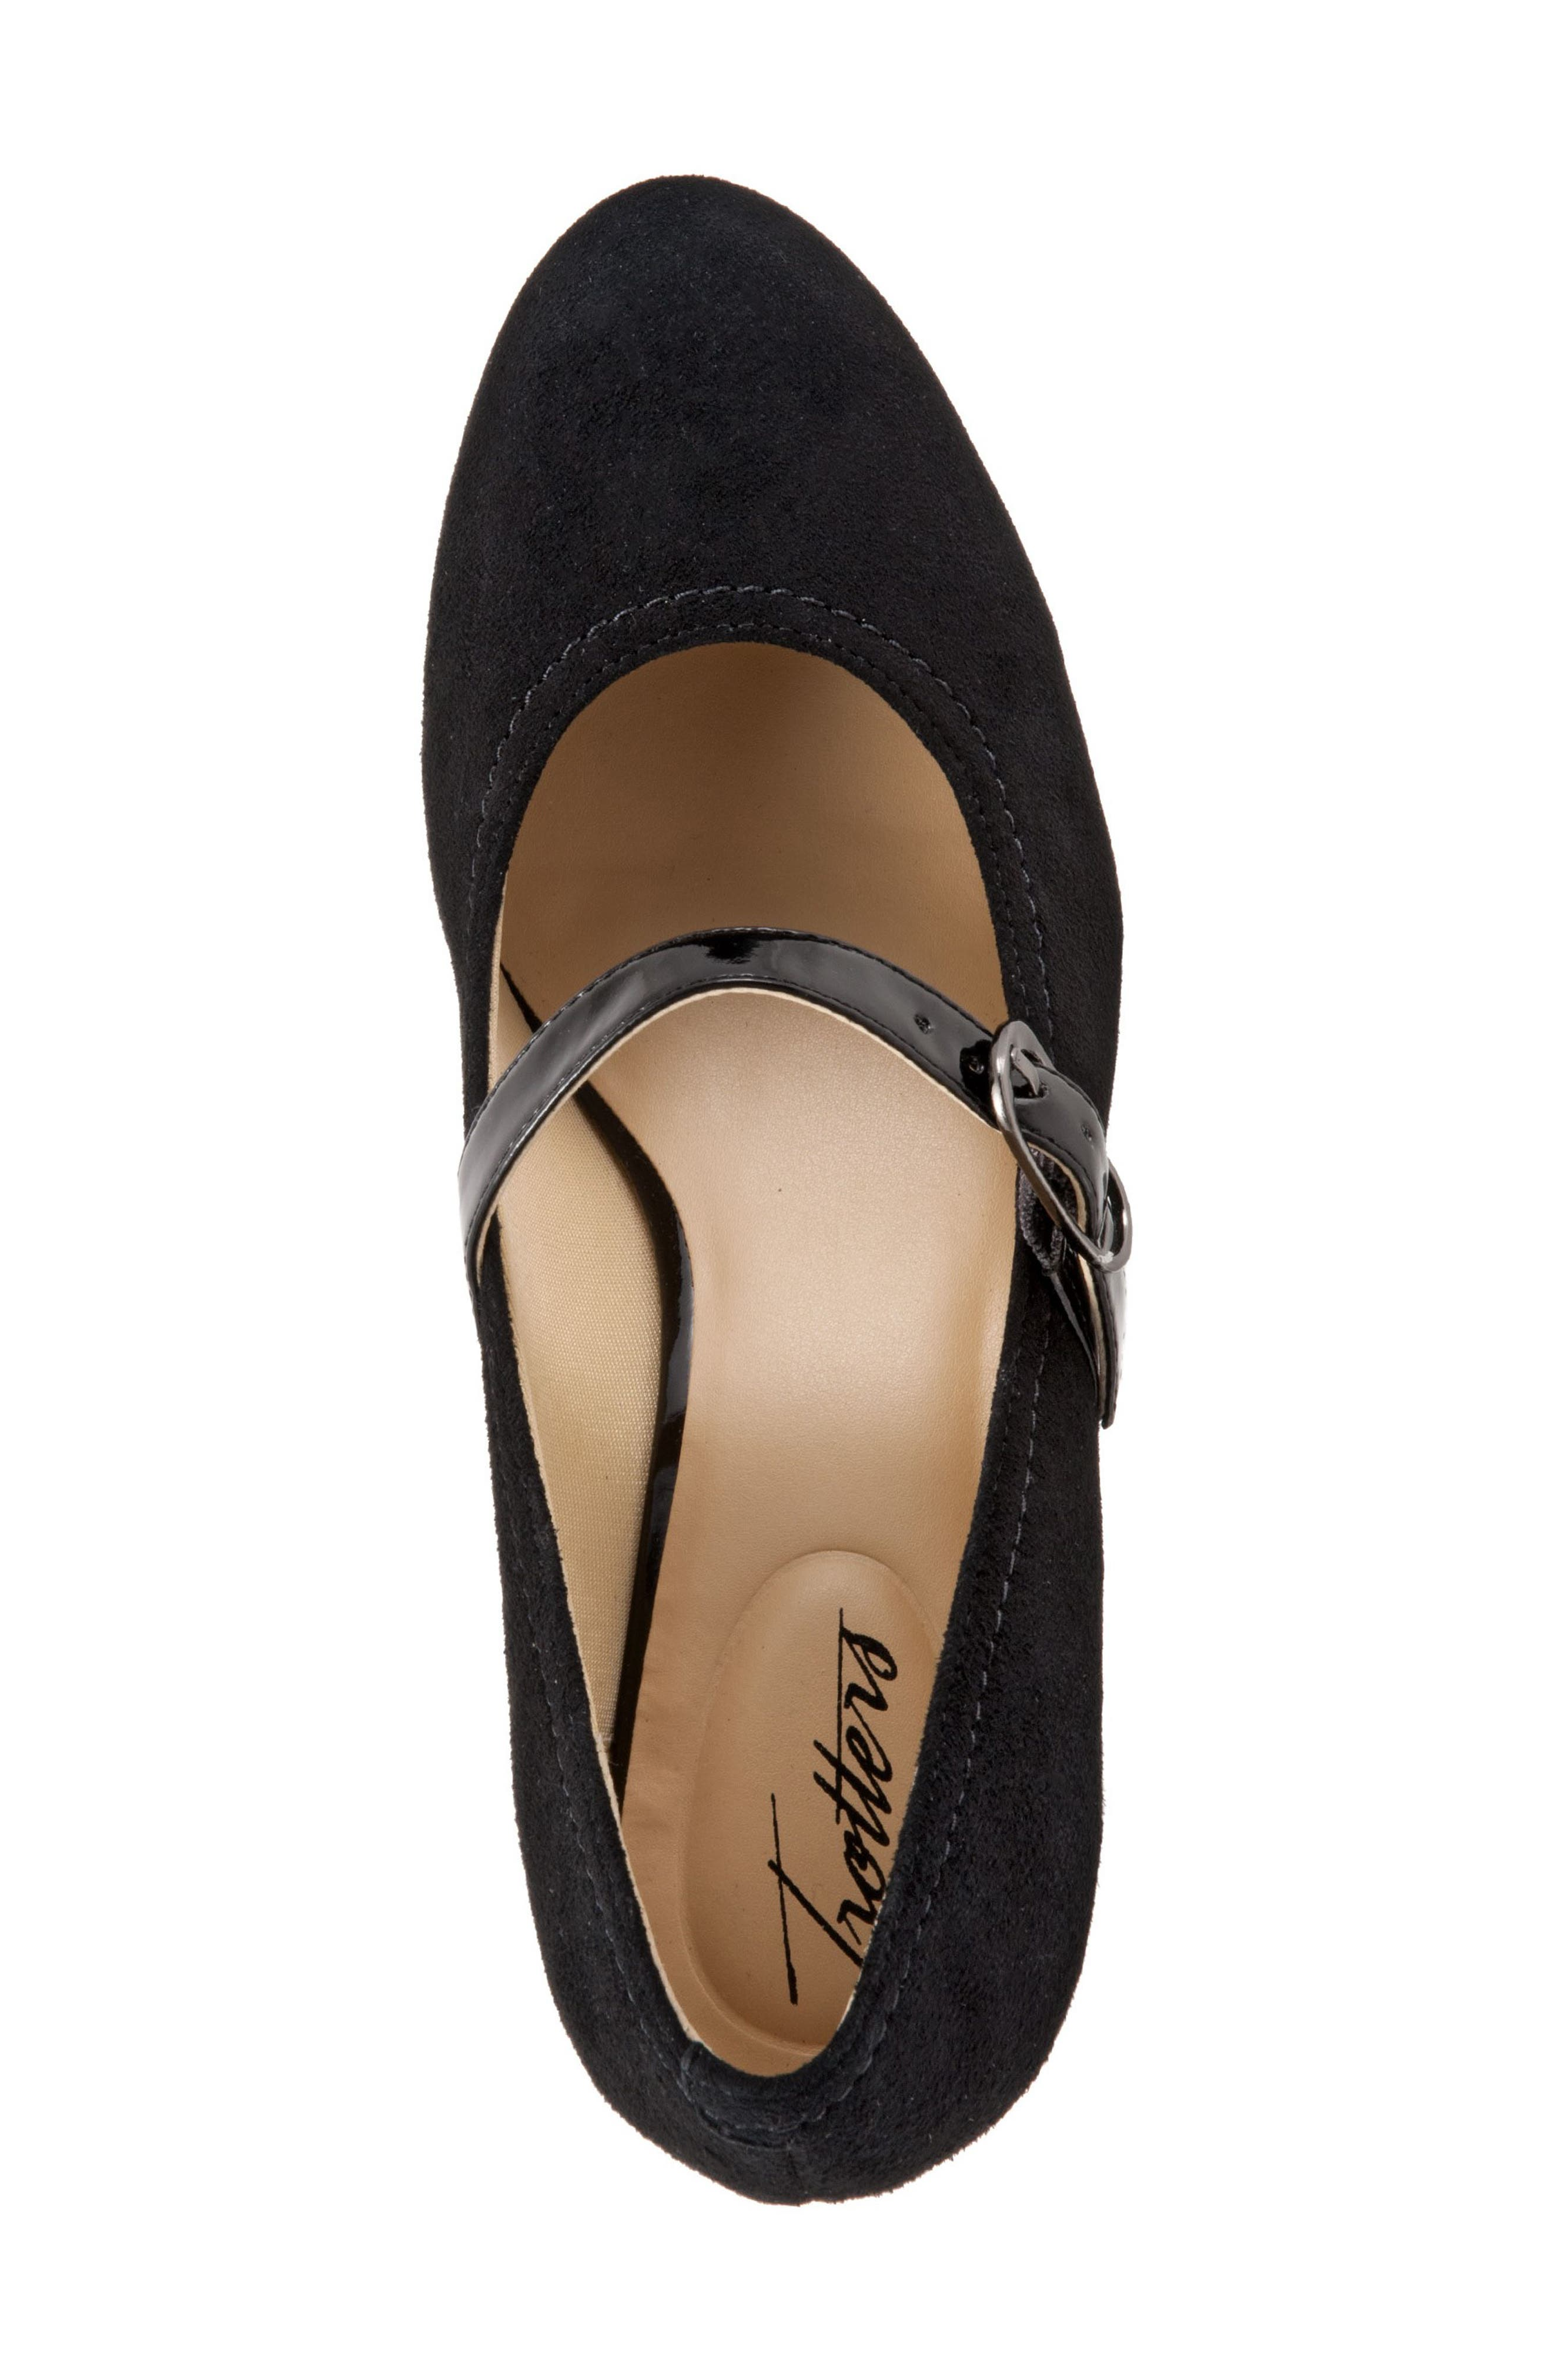 TROTTERS, 'Candice' Mary Jane Pump, Alternate thumbnail 4, color, BLACK SUEDE